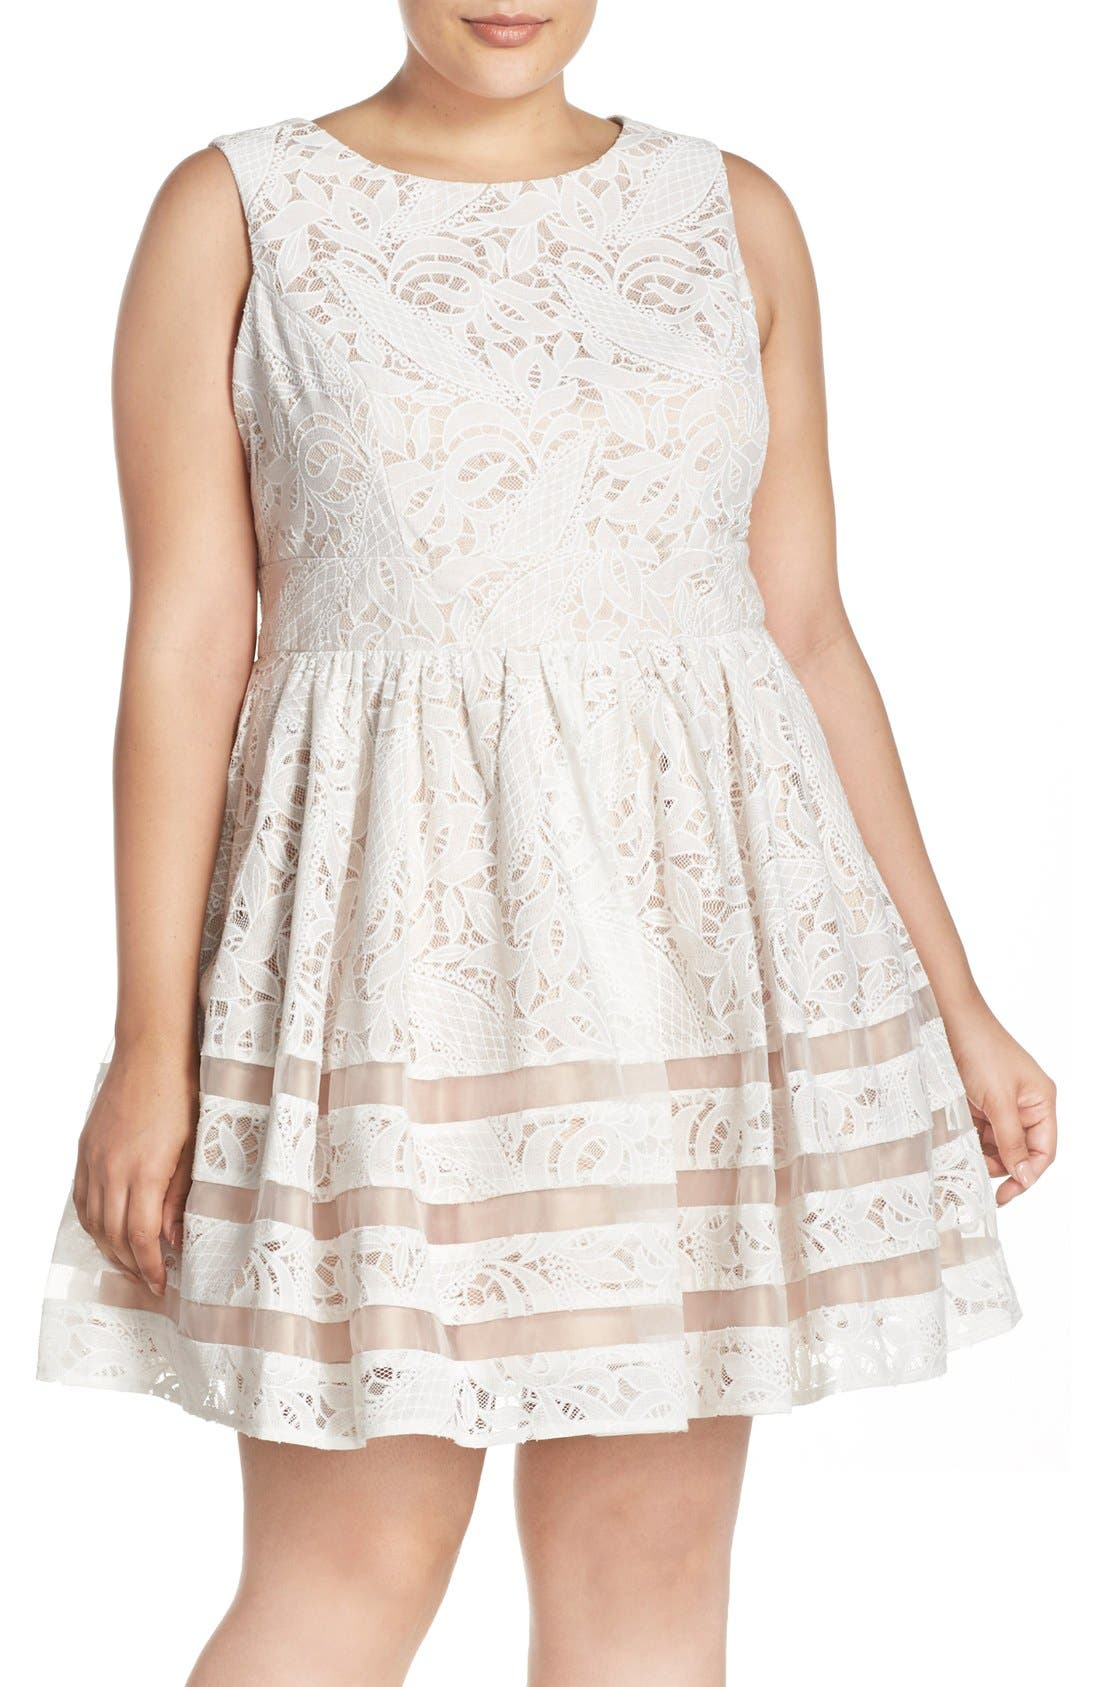 Alternate Image 1 Selected - Eliza J Shadow Stripe Lace Fit & Flare Party Dress (Plus Size)